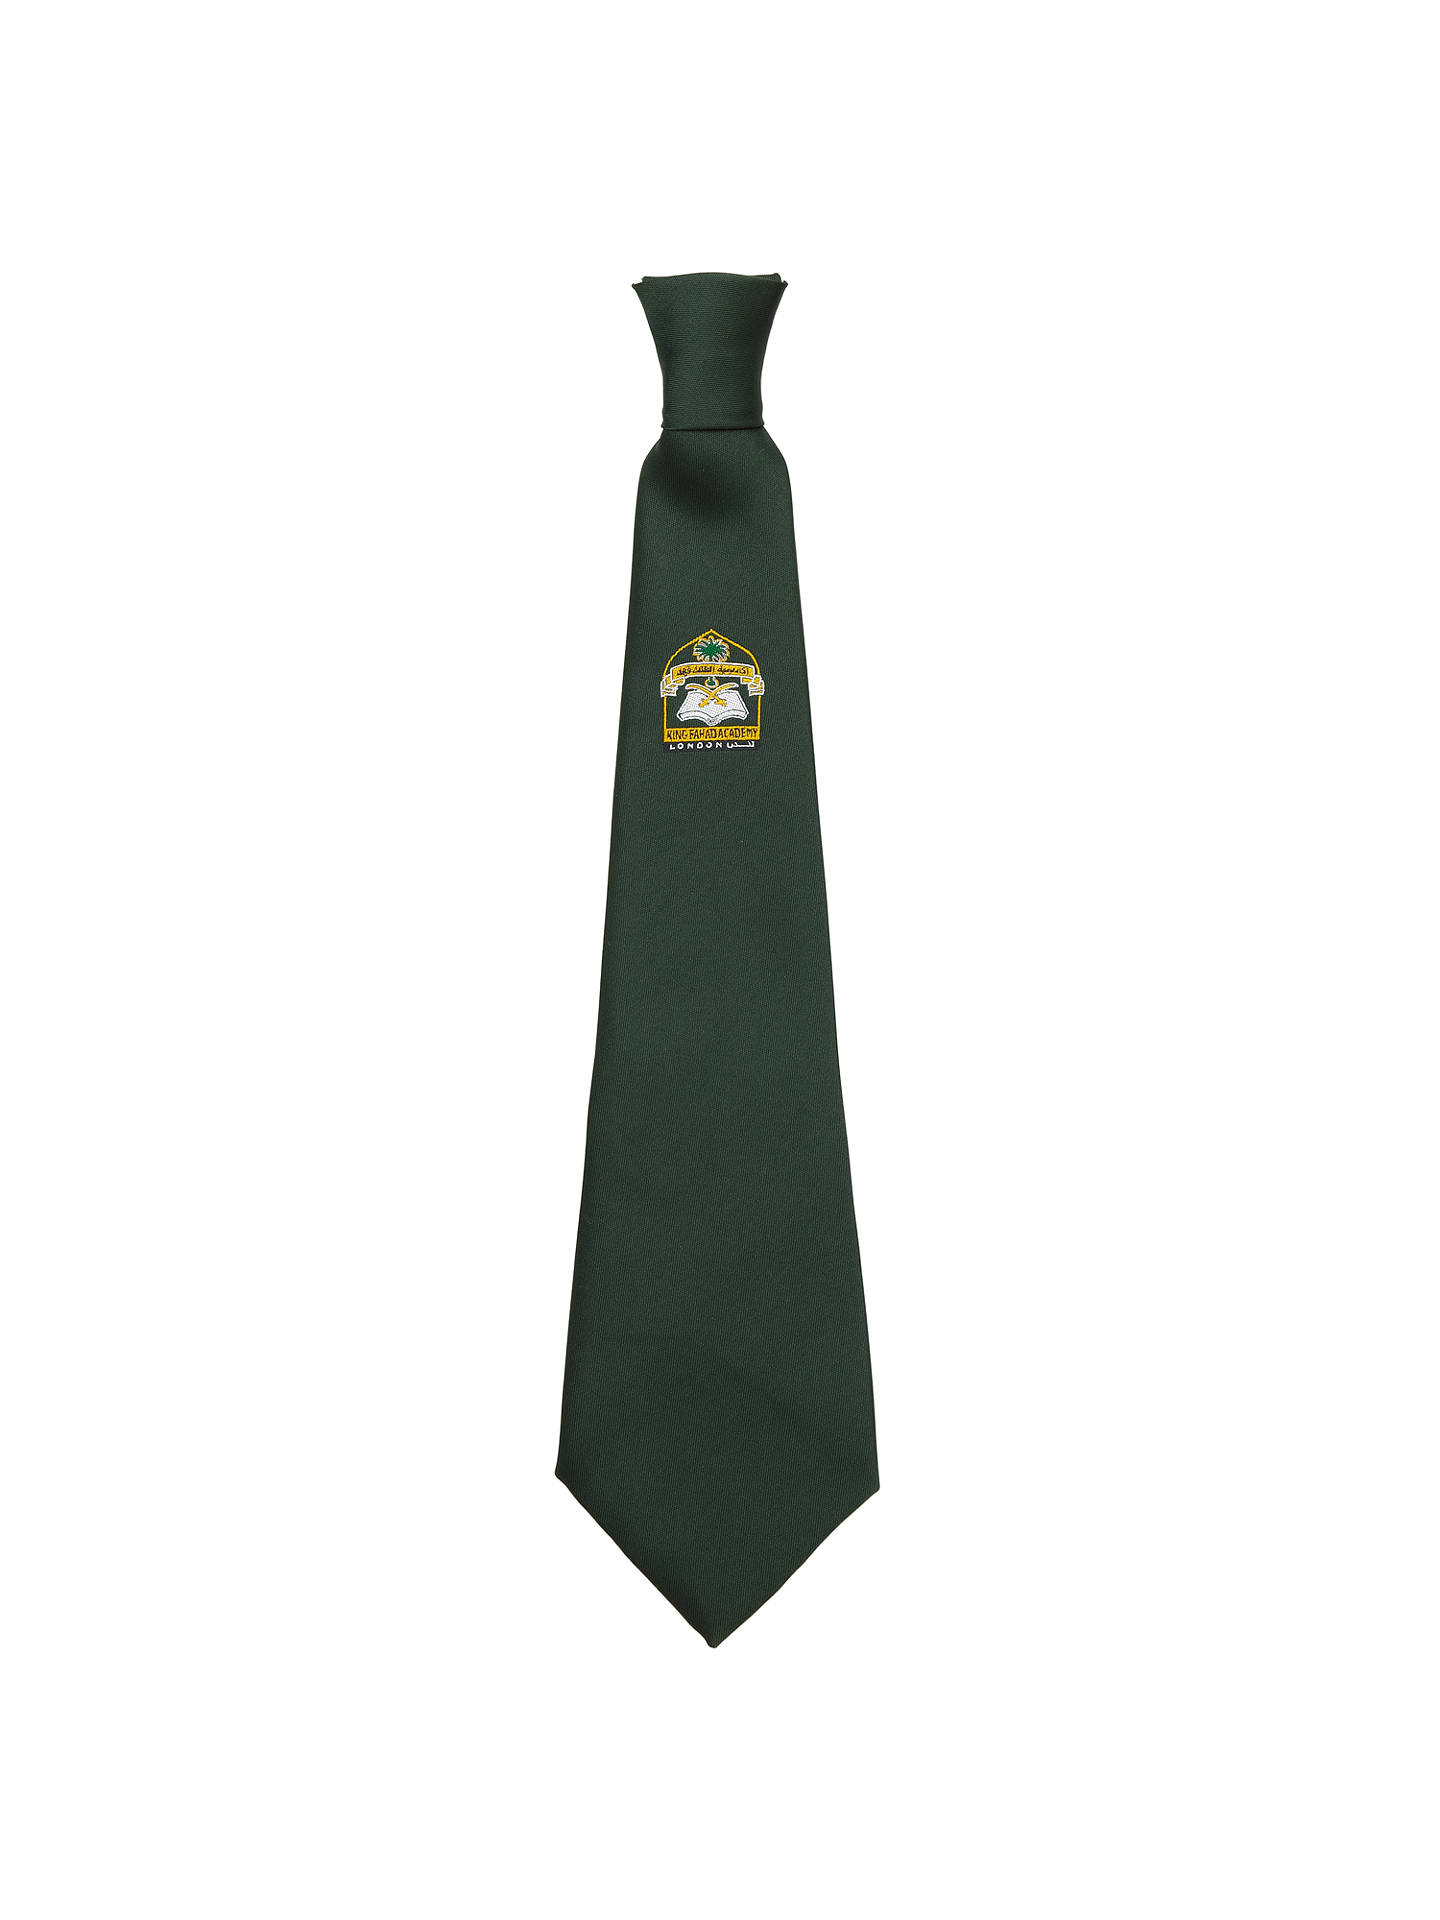 Buy King Fahad Academy Unisex Elastic Tie, Bottle green, One Size Online at johnlewis.com